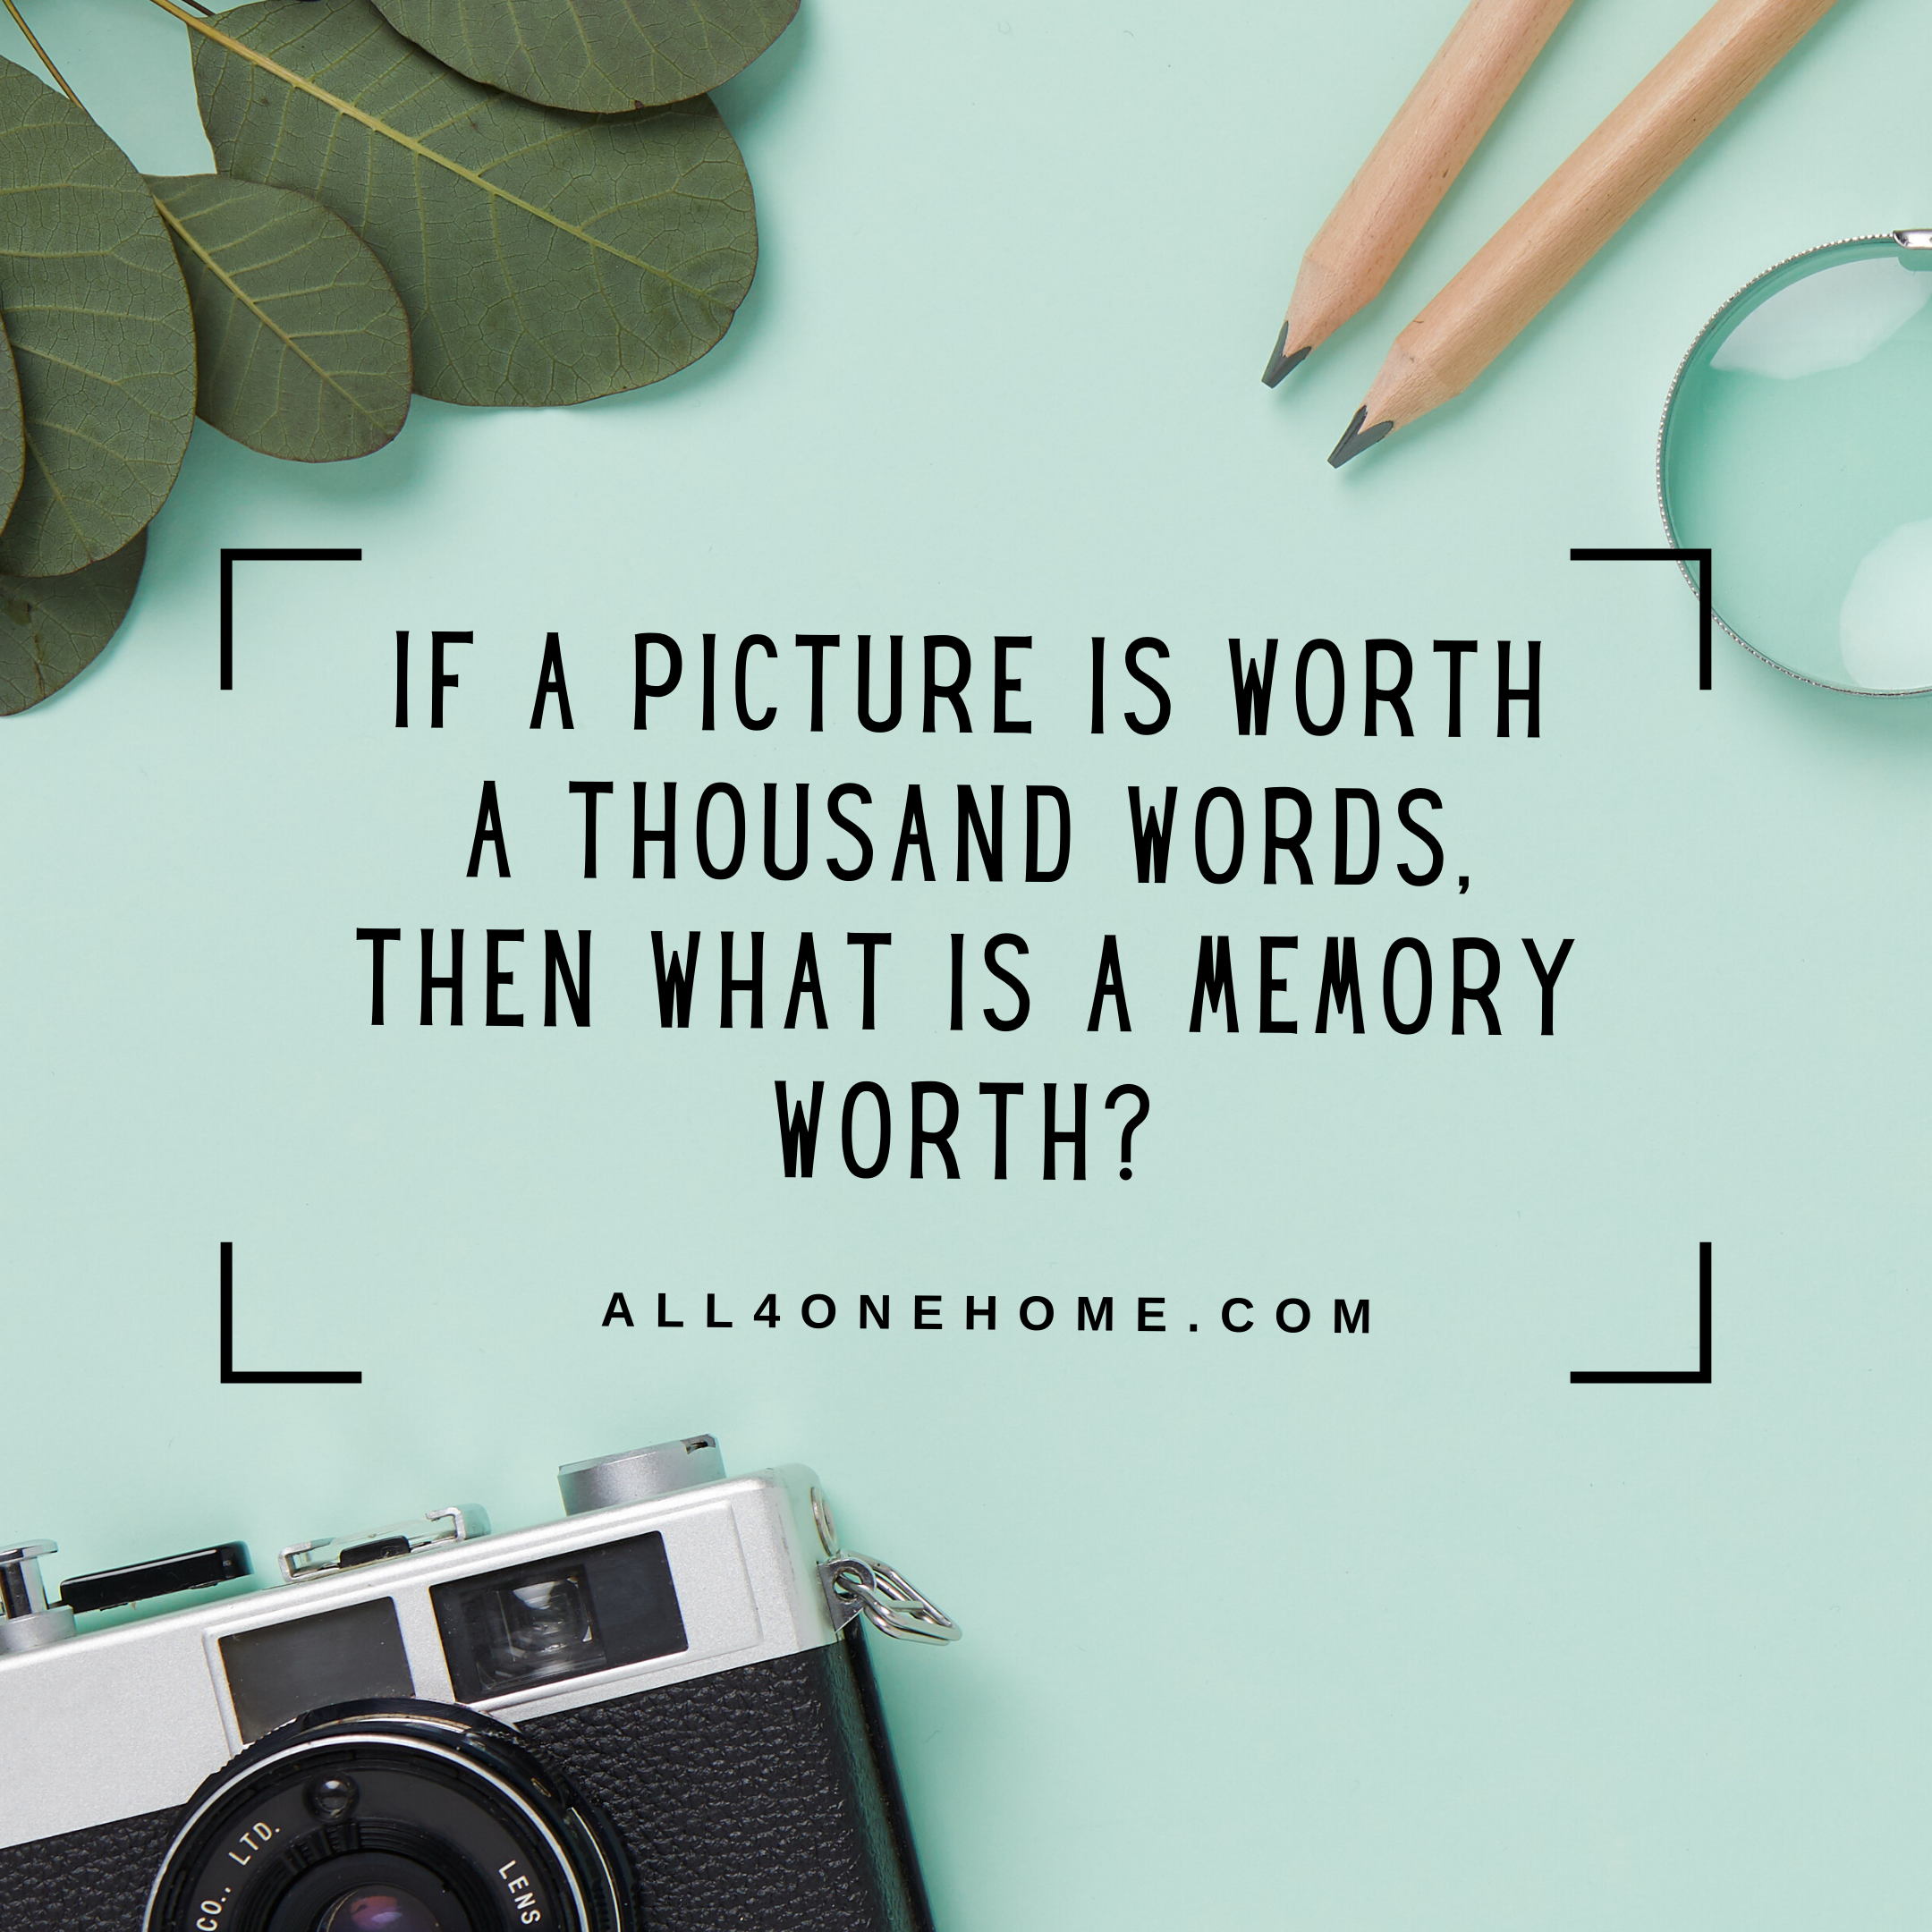 If a picture is worth 1000 words, then what is a memory worth?